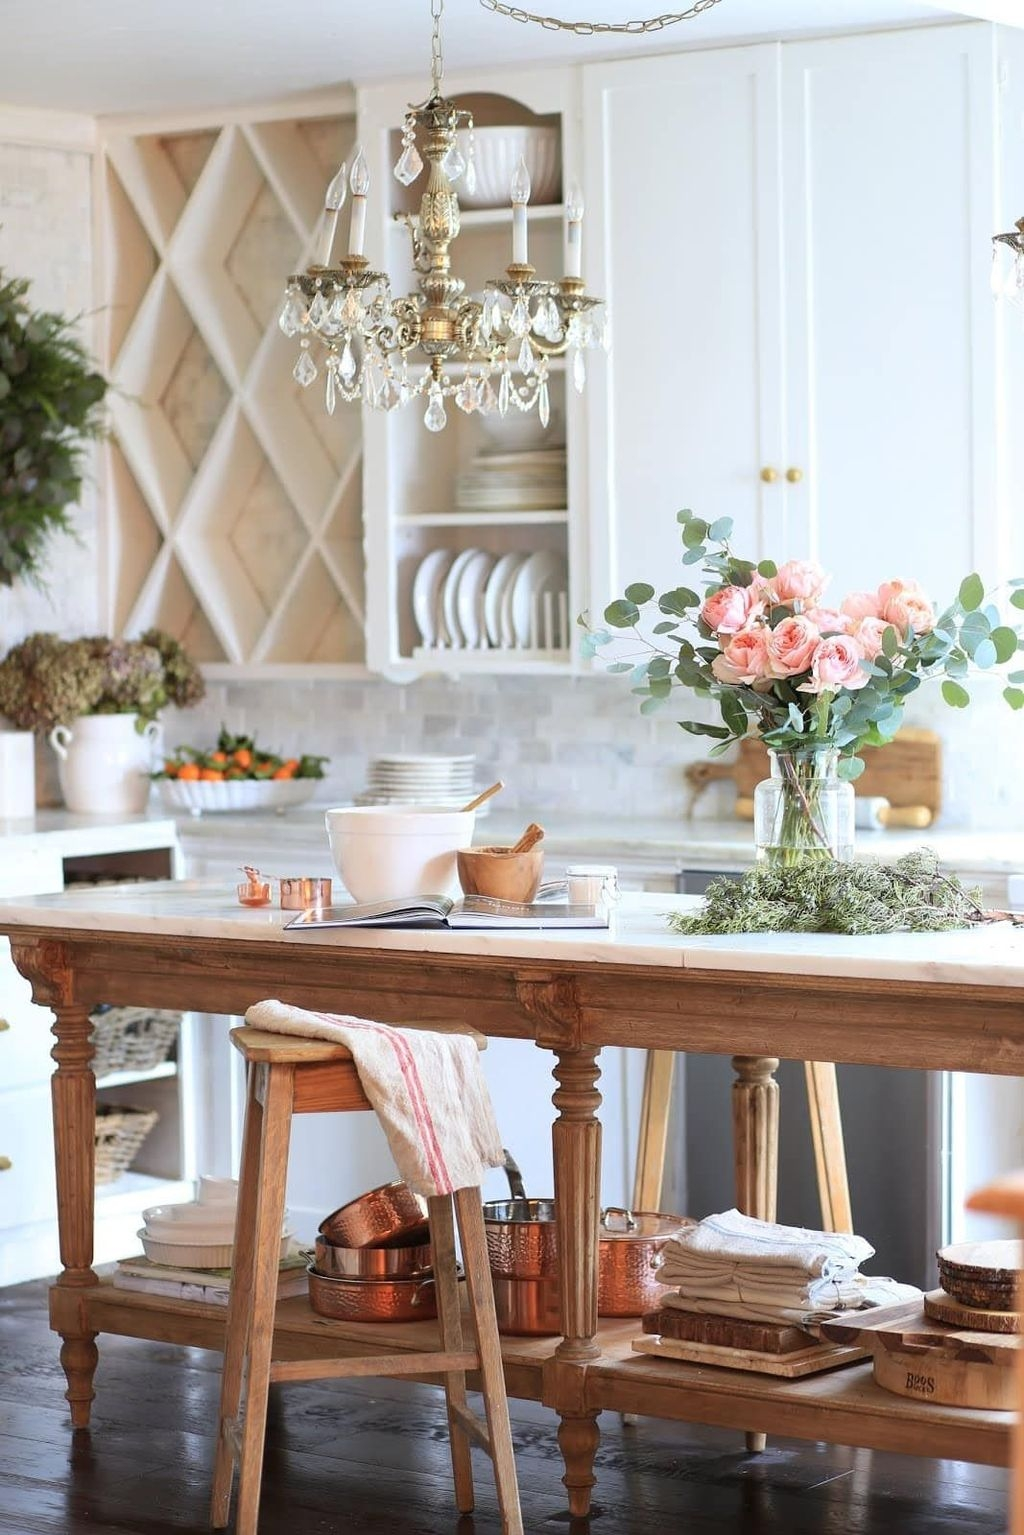 The Best French Country Style Kitchen Decor Ideas 07